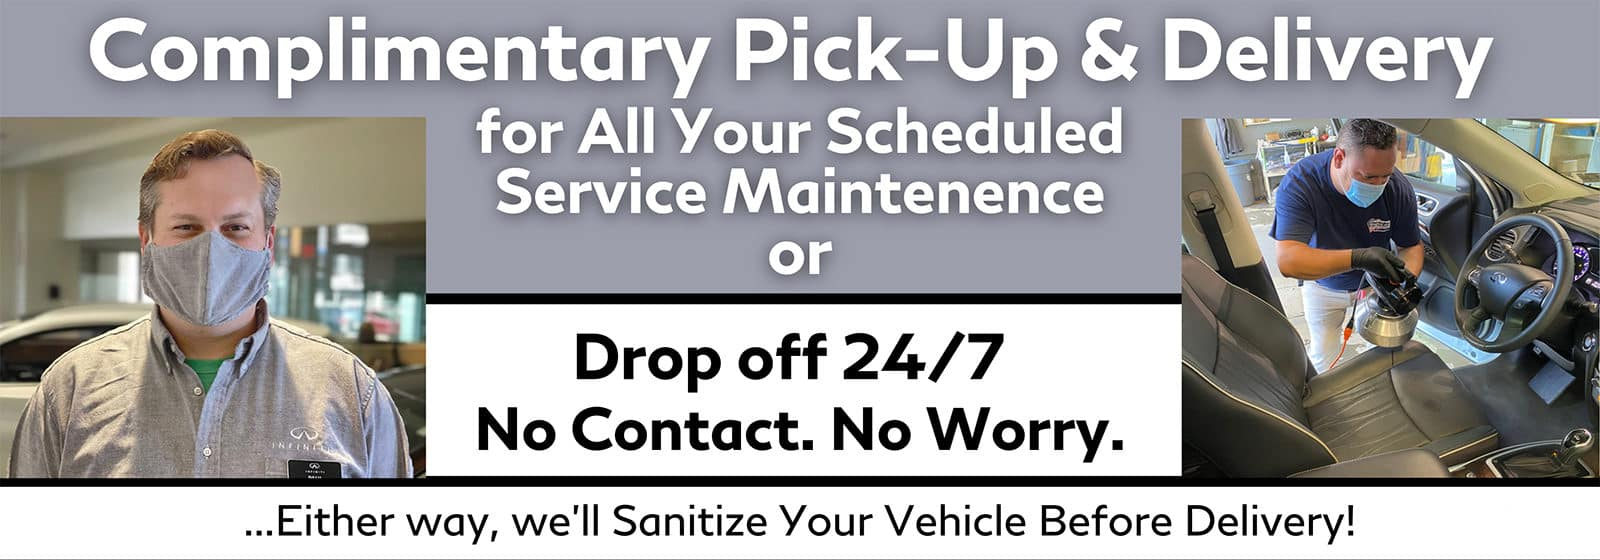 Complimentary Pick-Up & Delivery for all your scheduled service maintenance or drop off 24/7. No contact. No worry. Either way, we'll sanitize your vehicle before delivery!